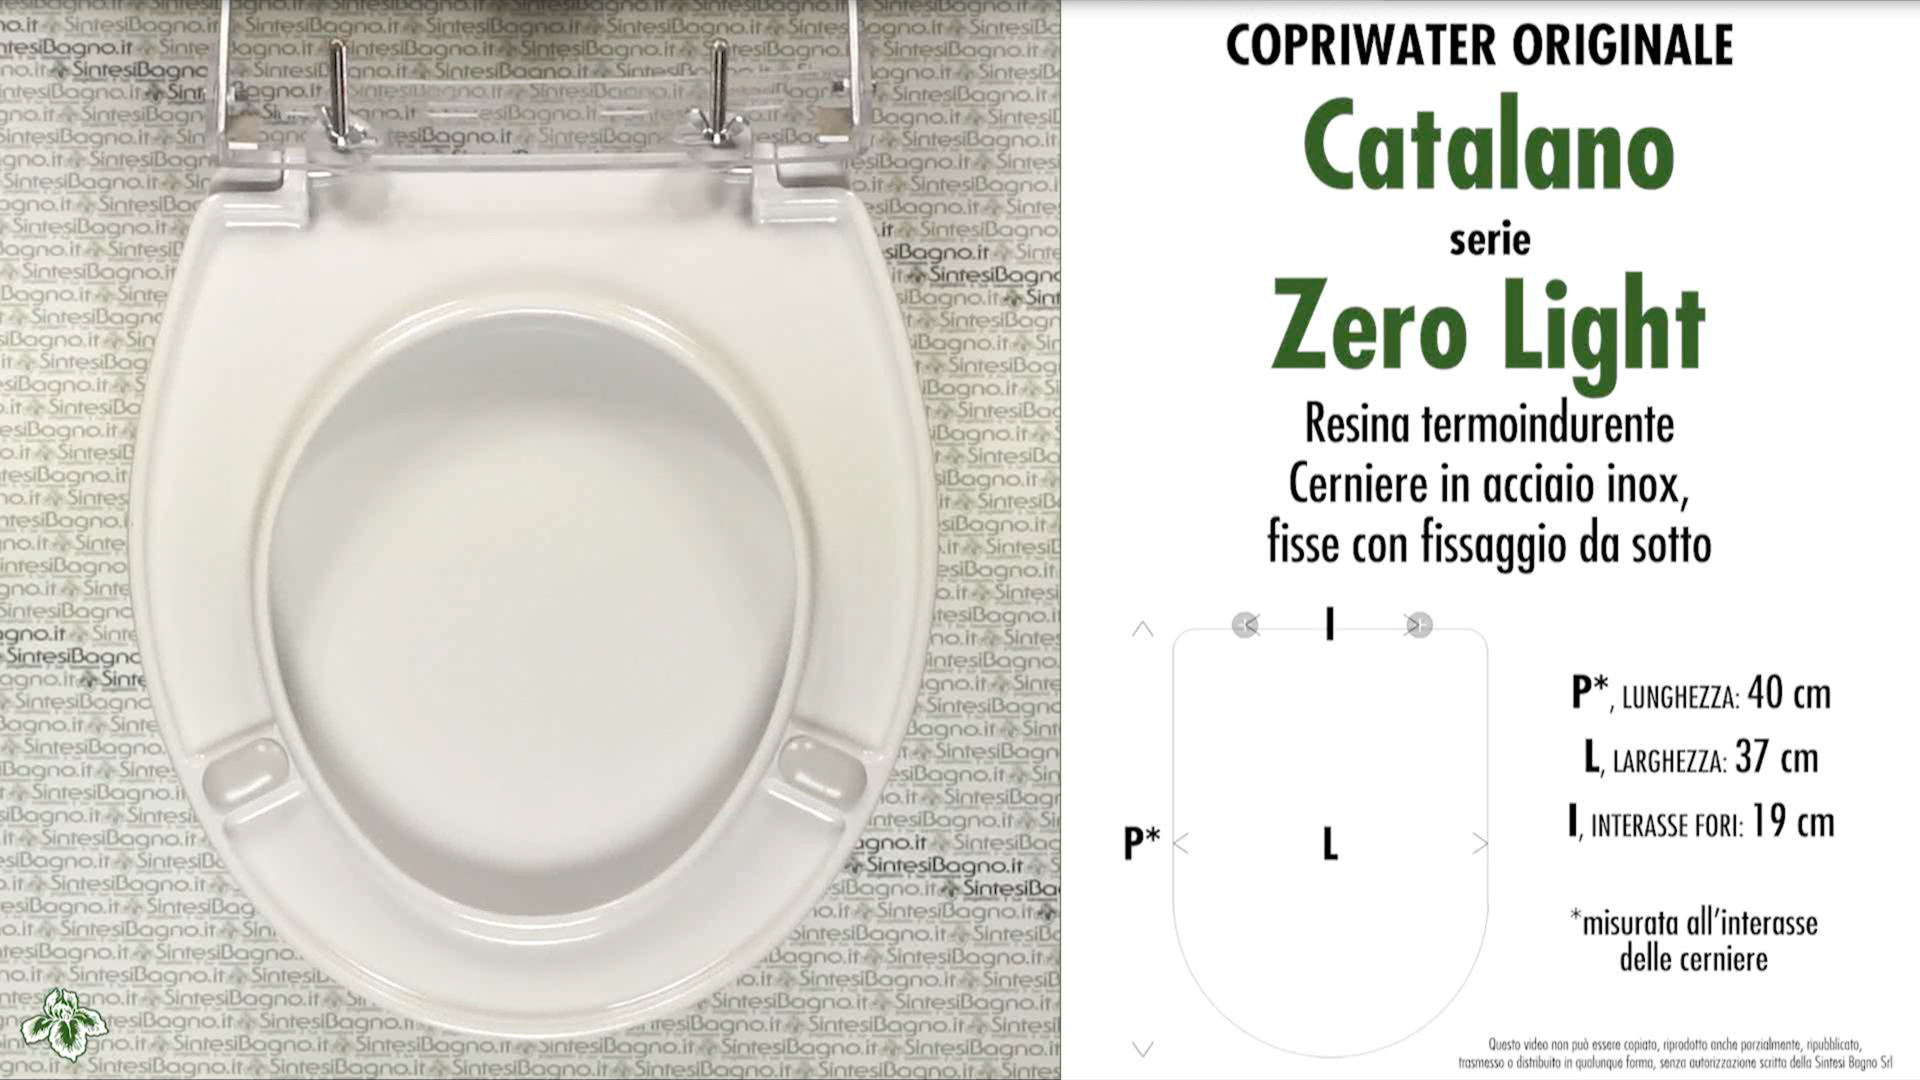 Copriwater per vaso ZERO LIGHT / CATALANO. Tipo ORIGINALE